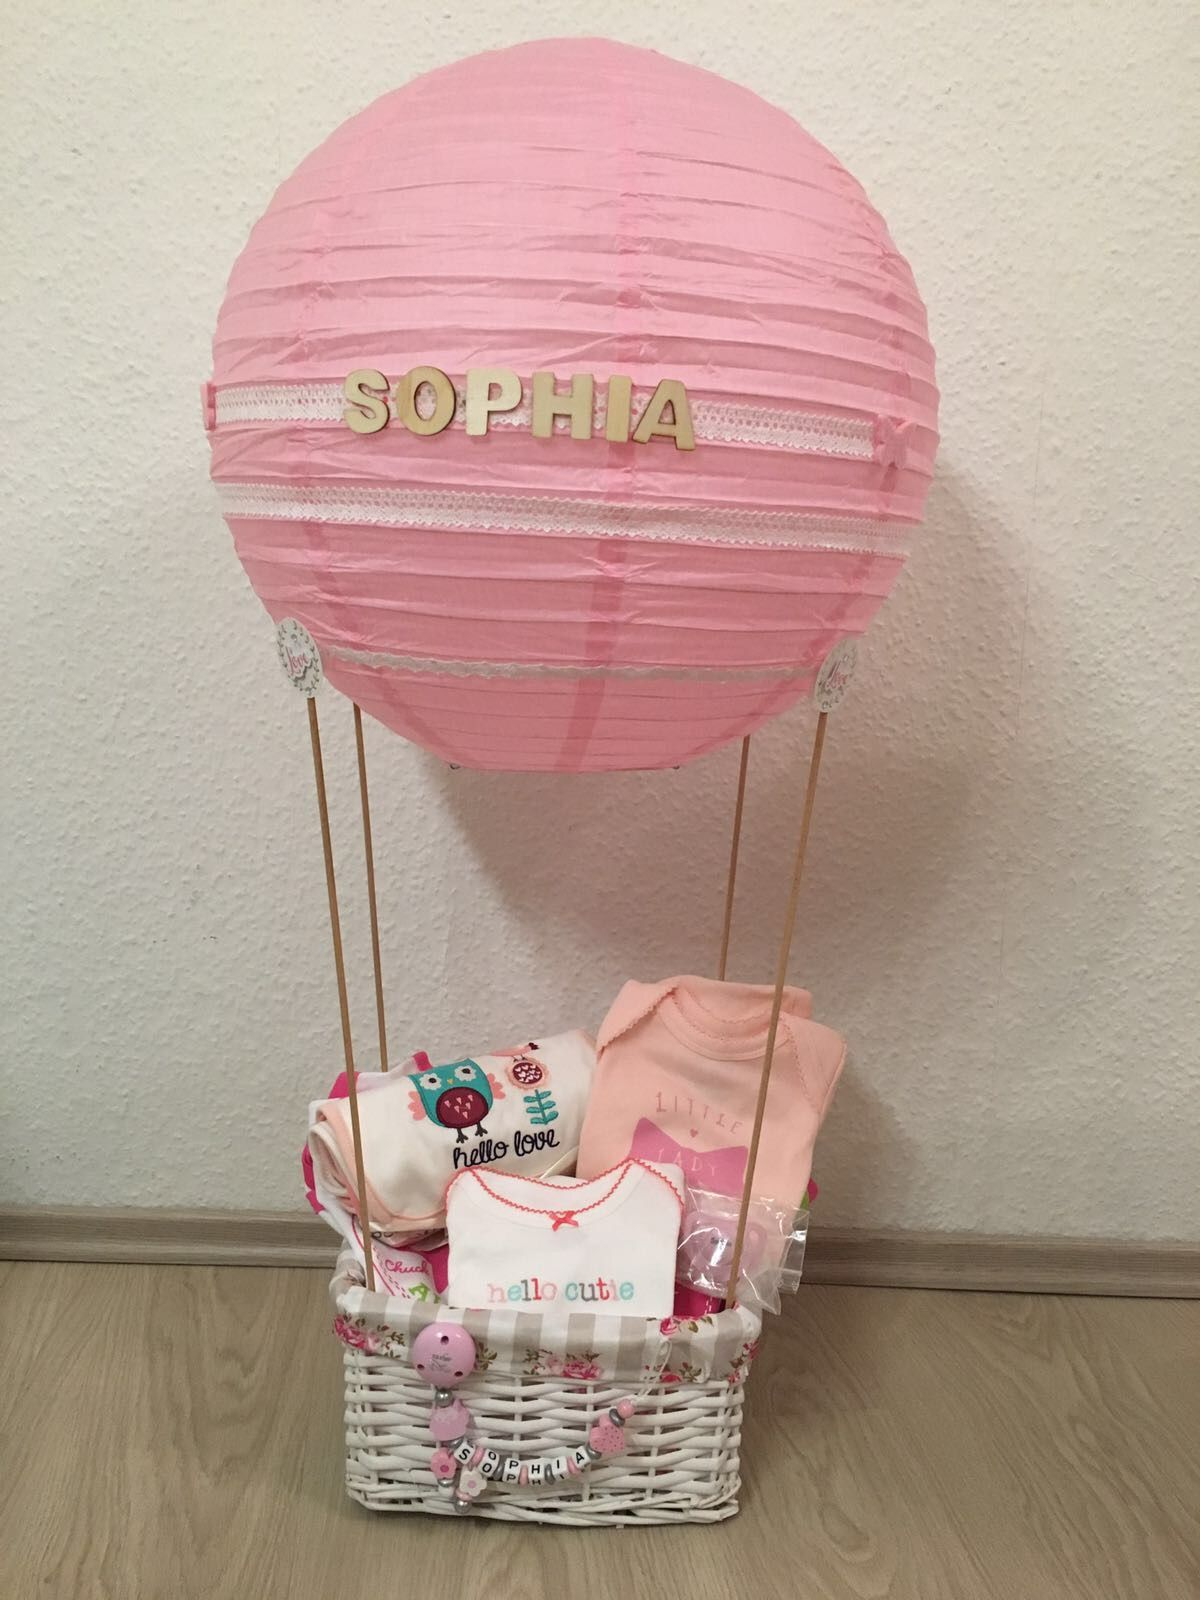 babyshower geschenk ballon too cute pinterest baby baby shower und cute. Black Bedroom Furniture Sets. Home Design Ideas